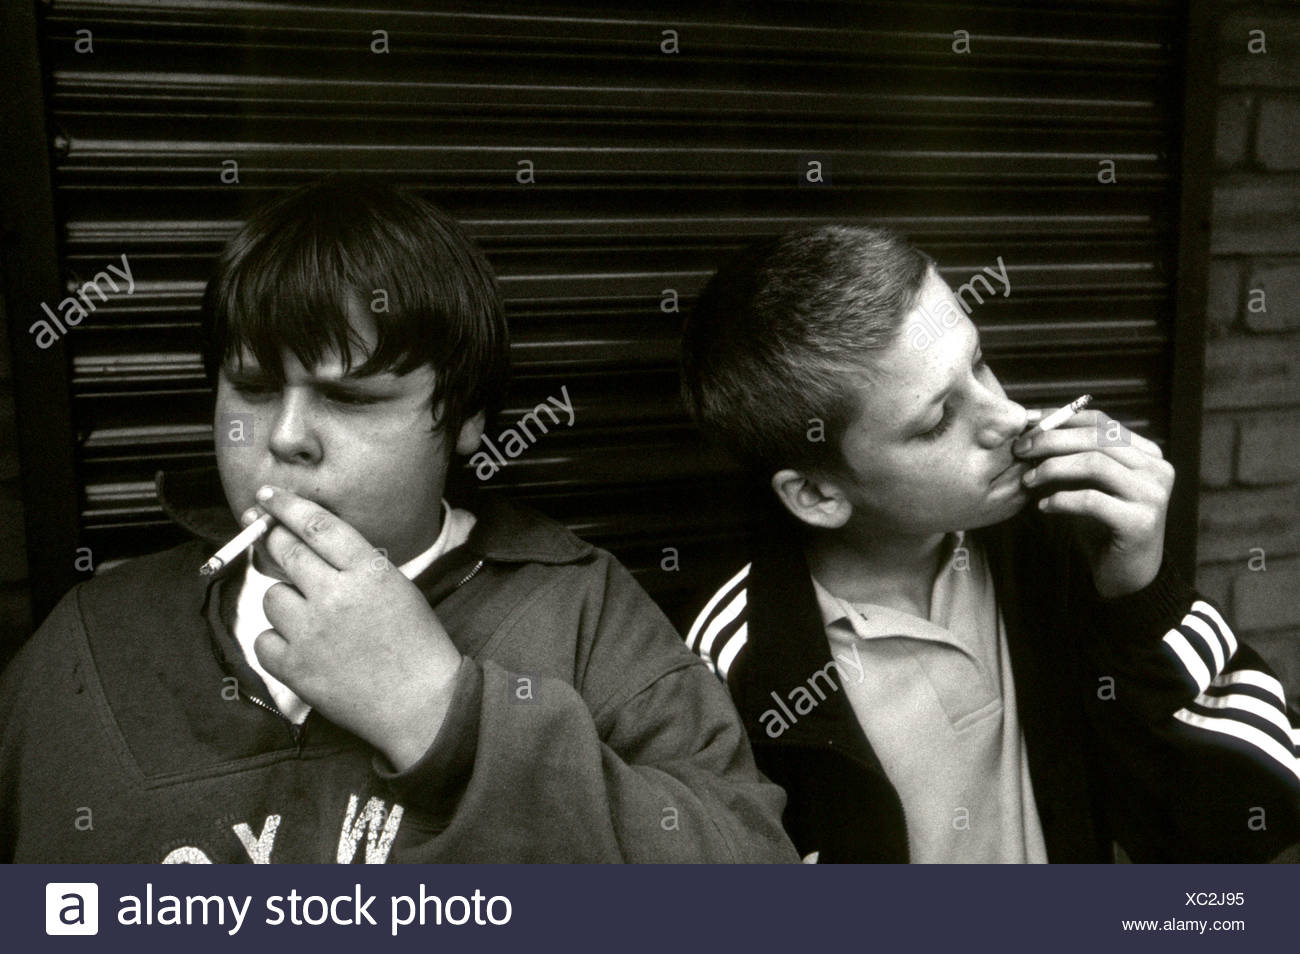 Boys Smoking Pic